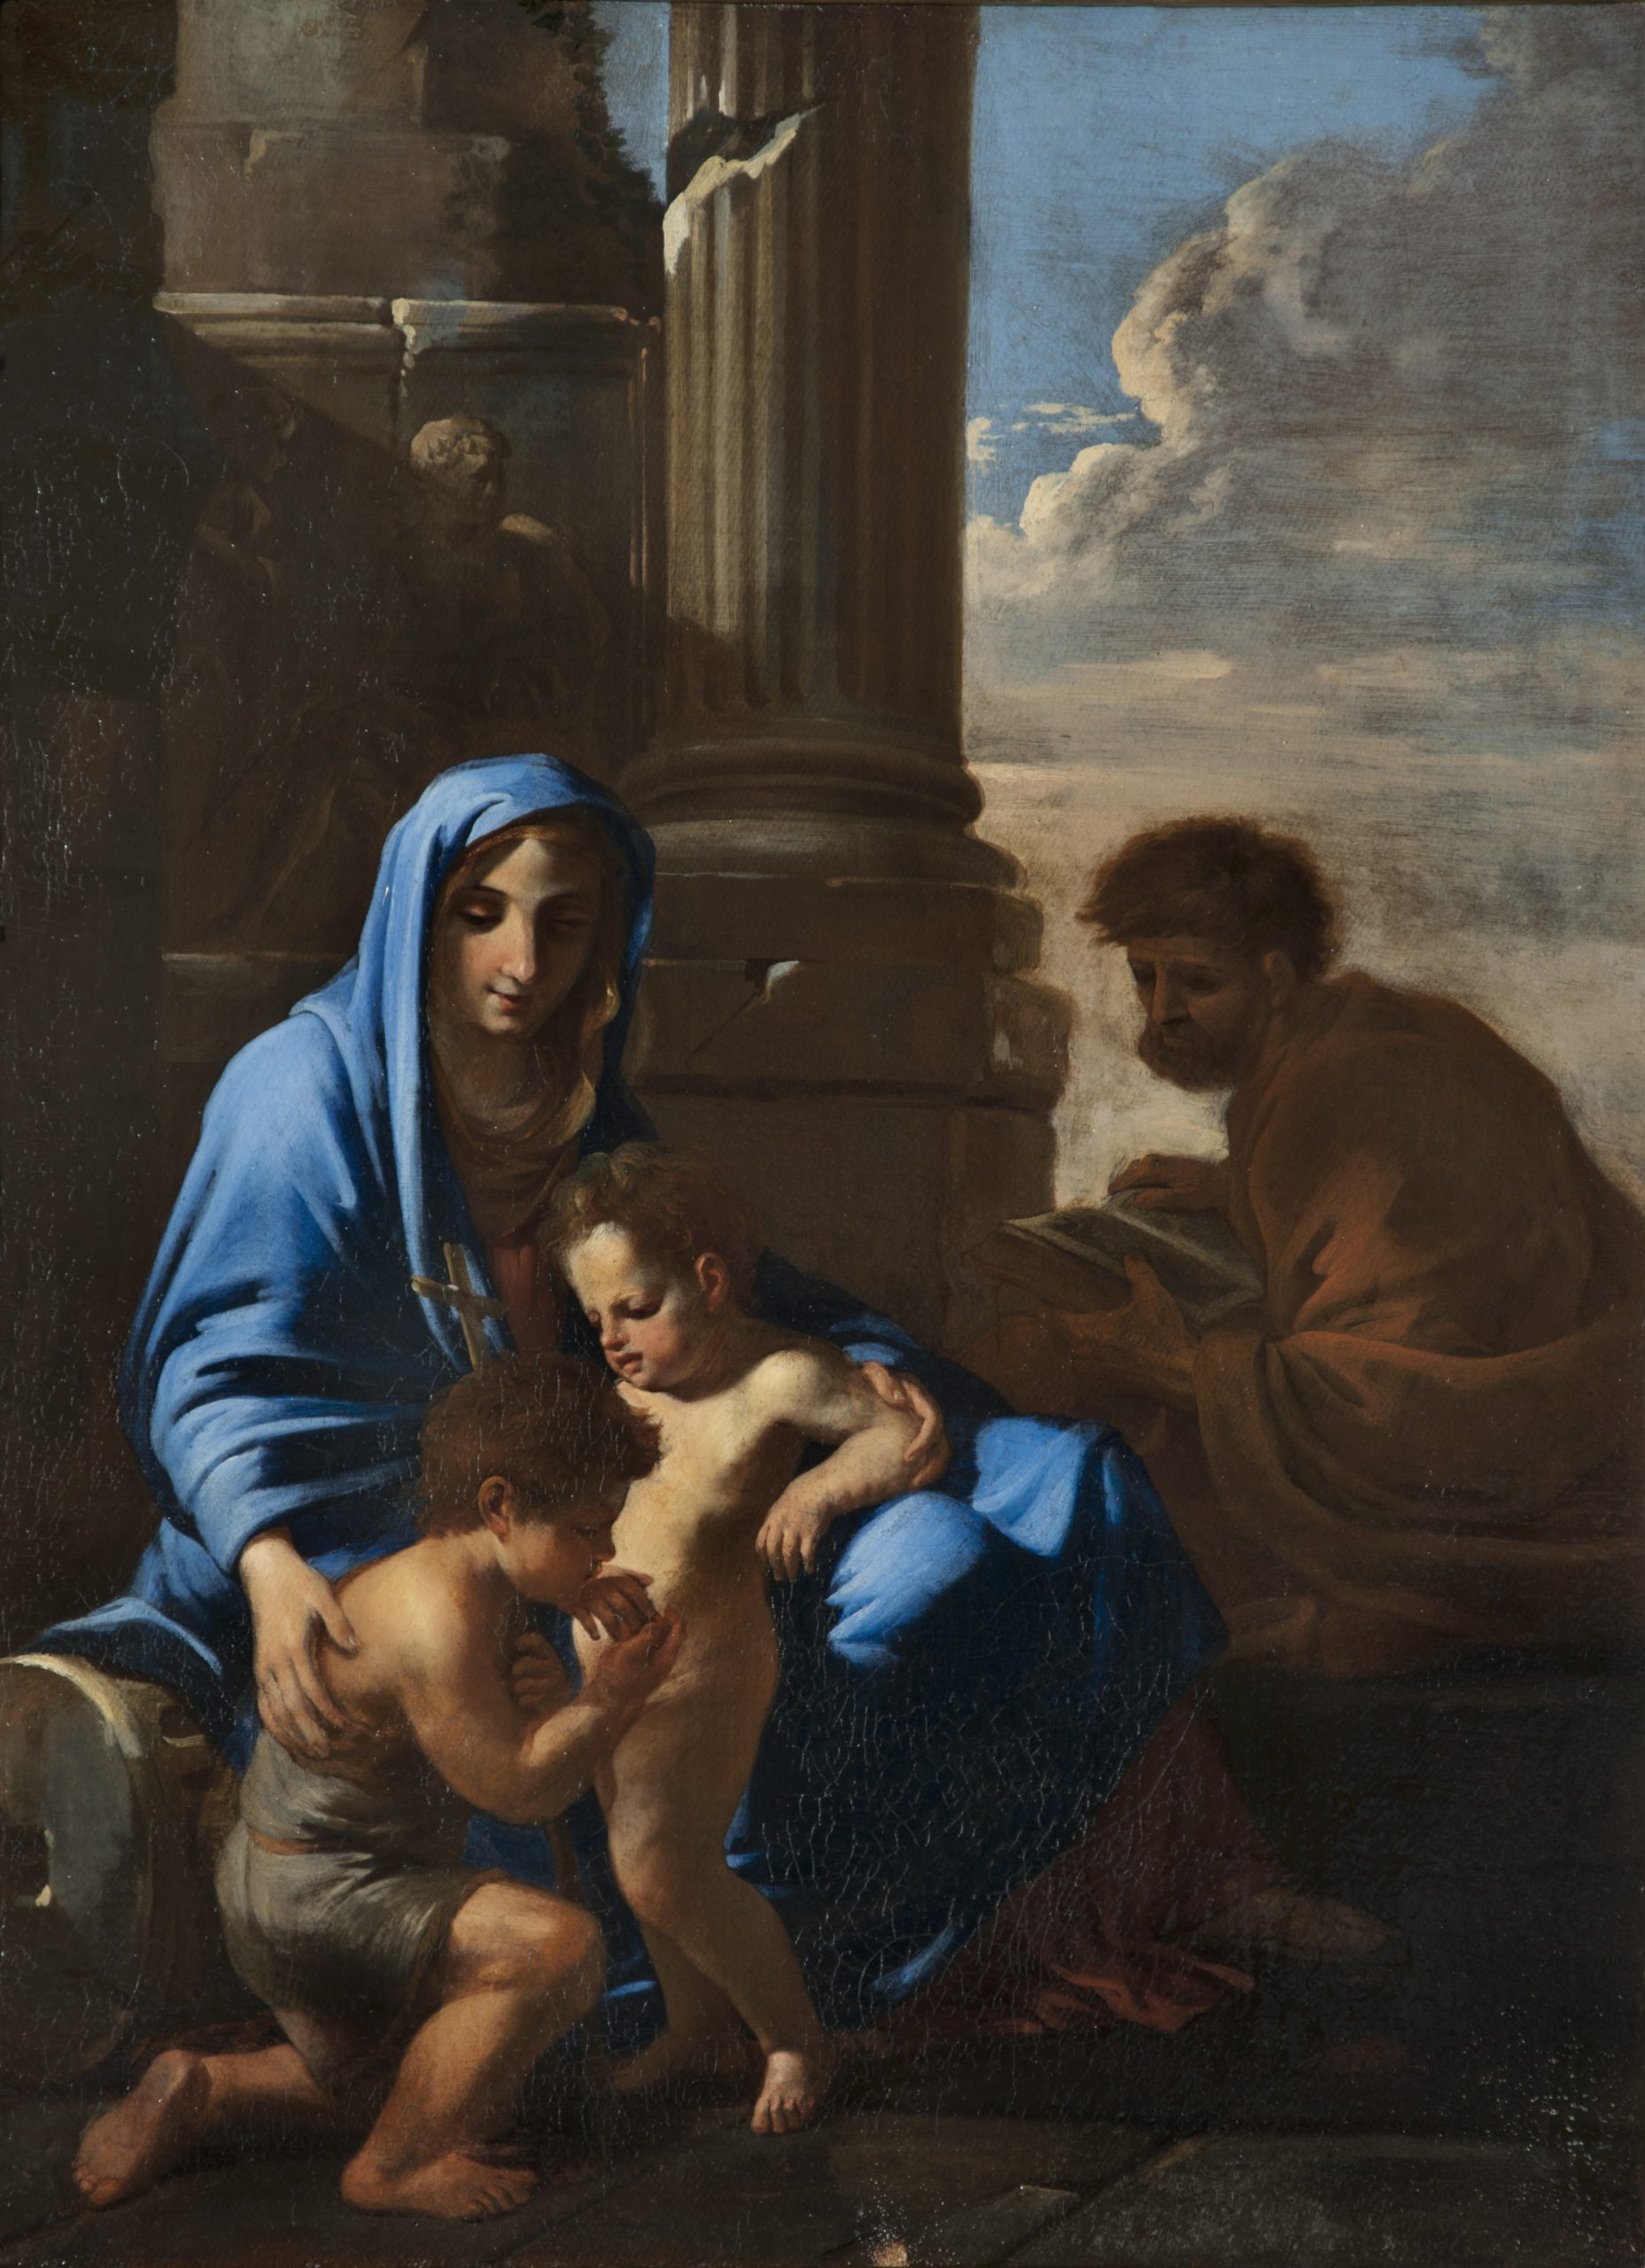 A mother holds two young children, while a man looks on